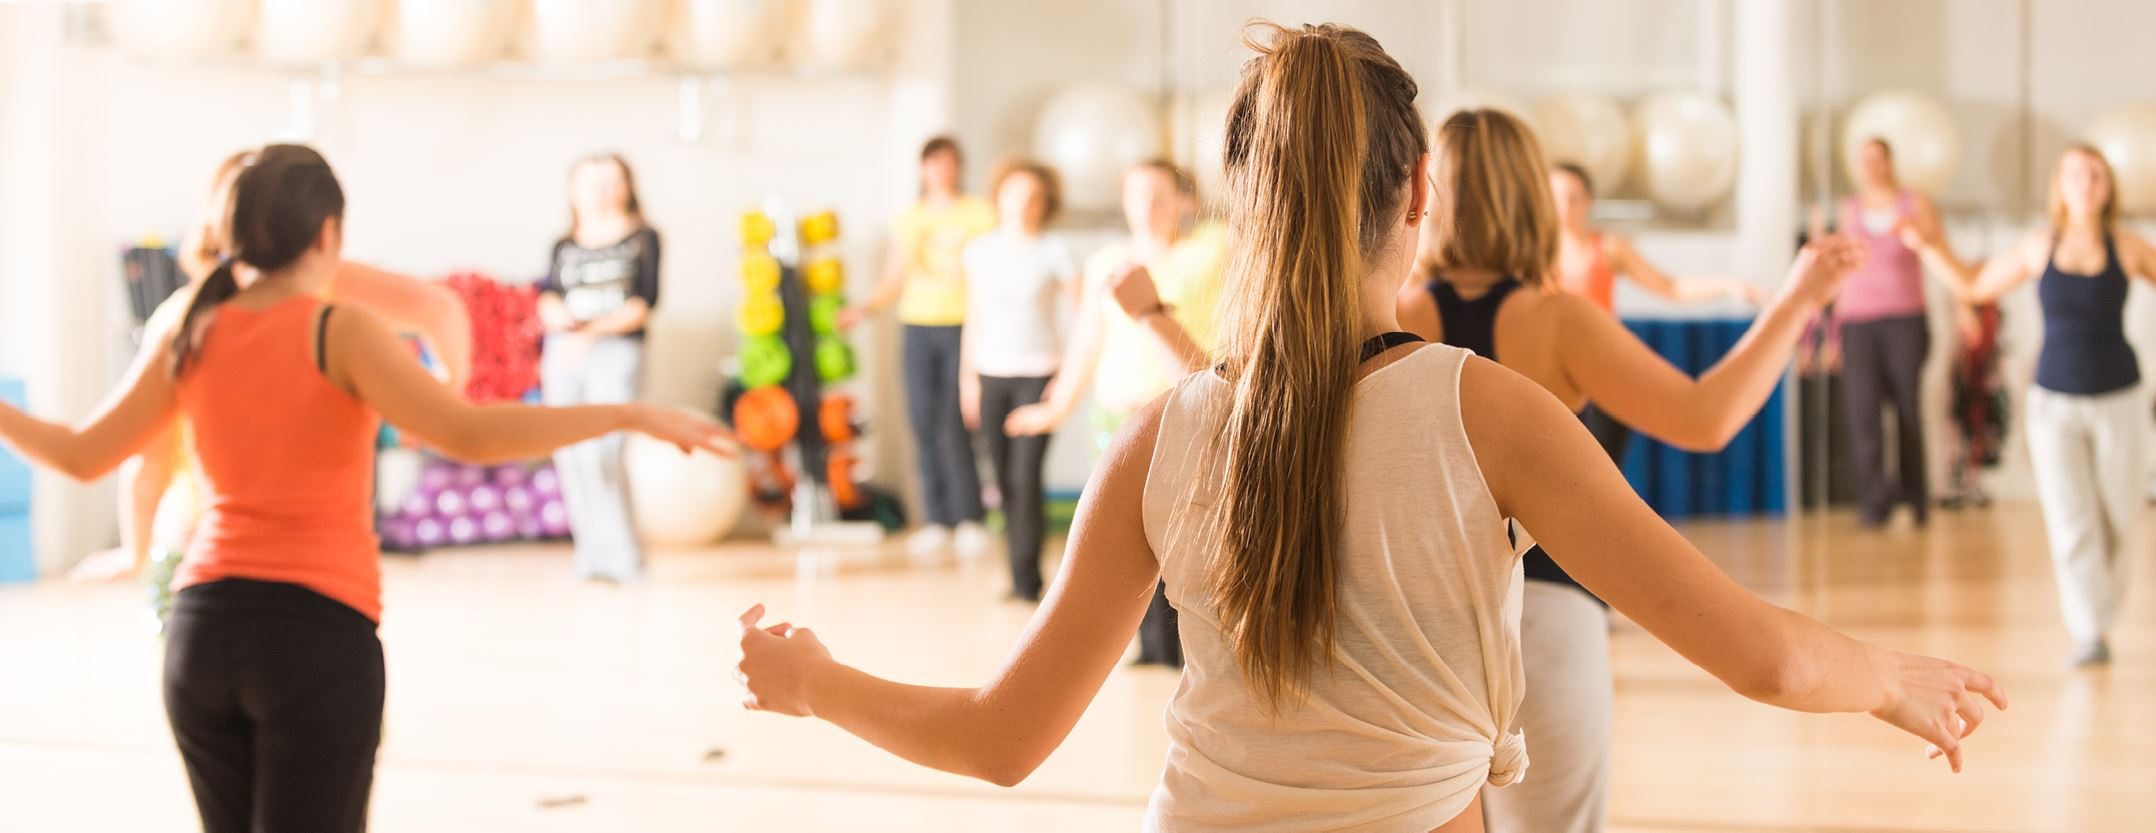 High Intensity Fitness Classes